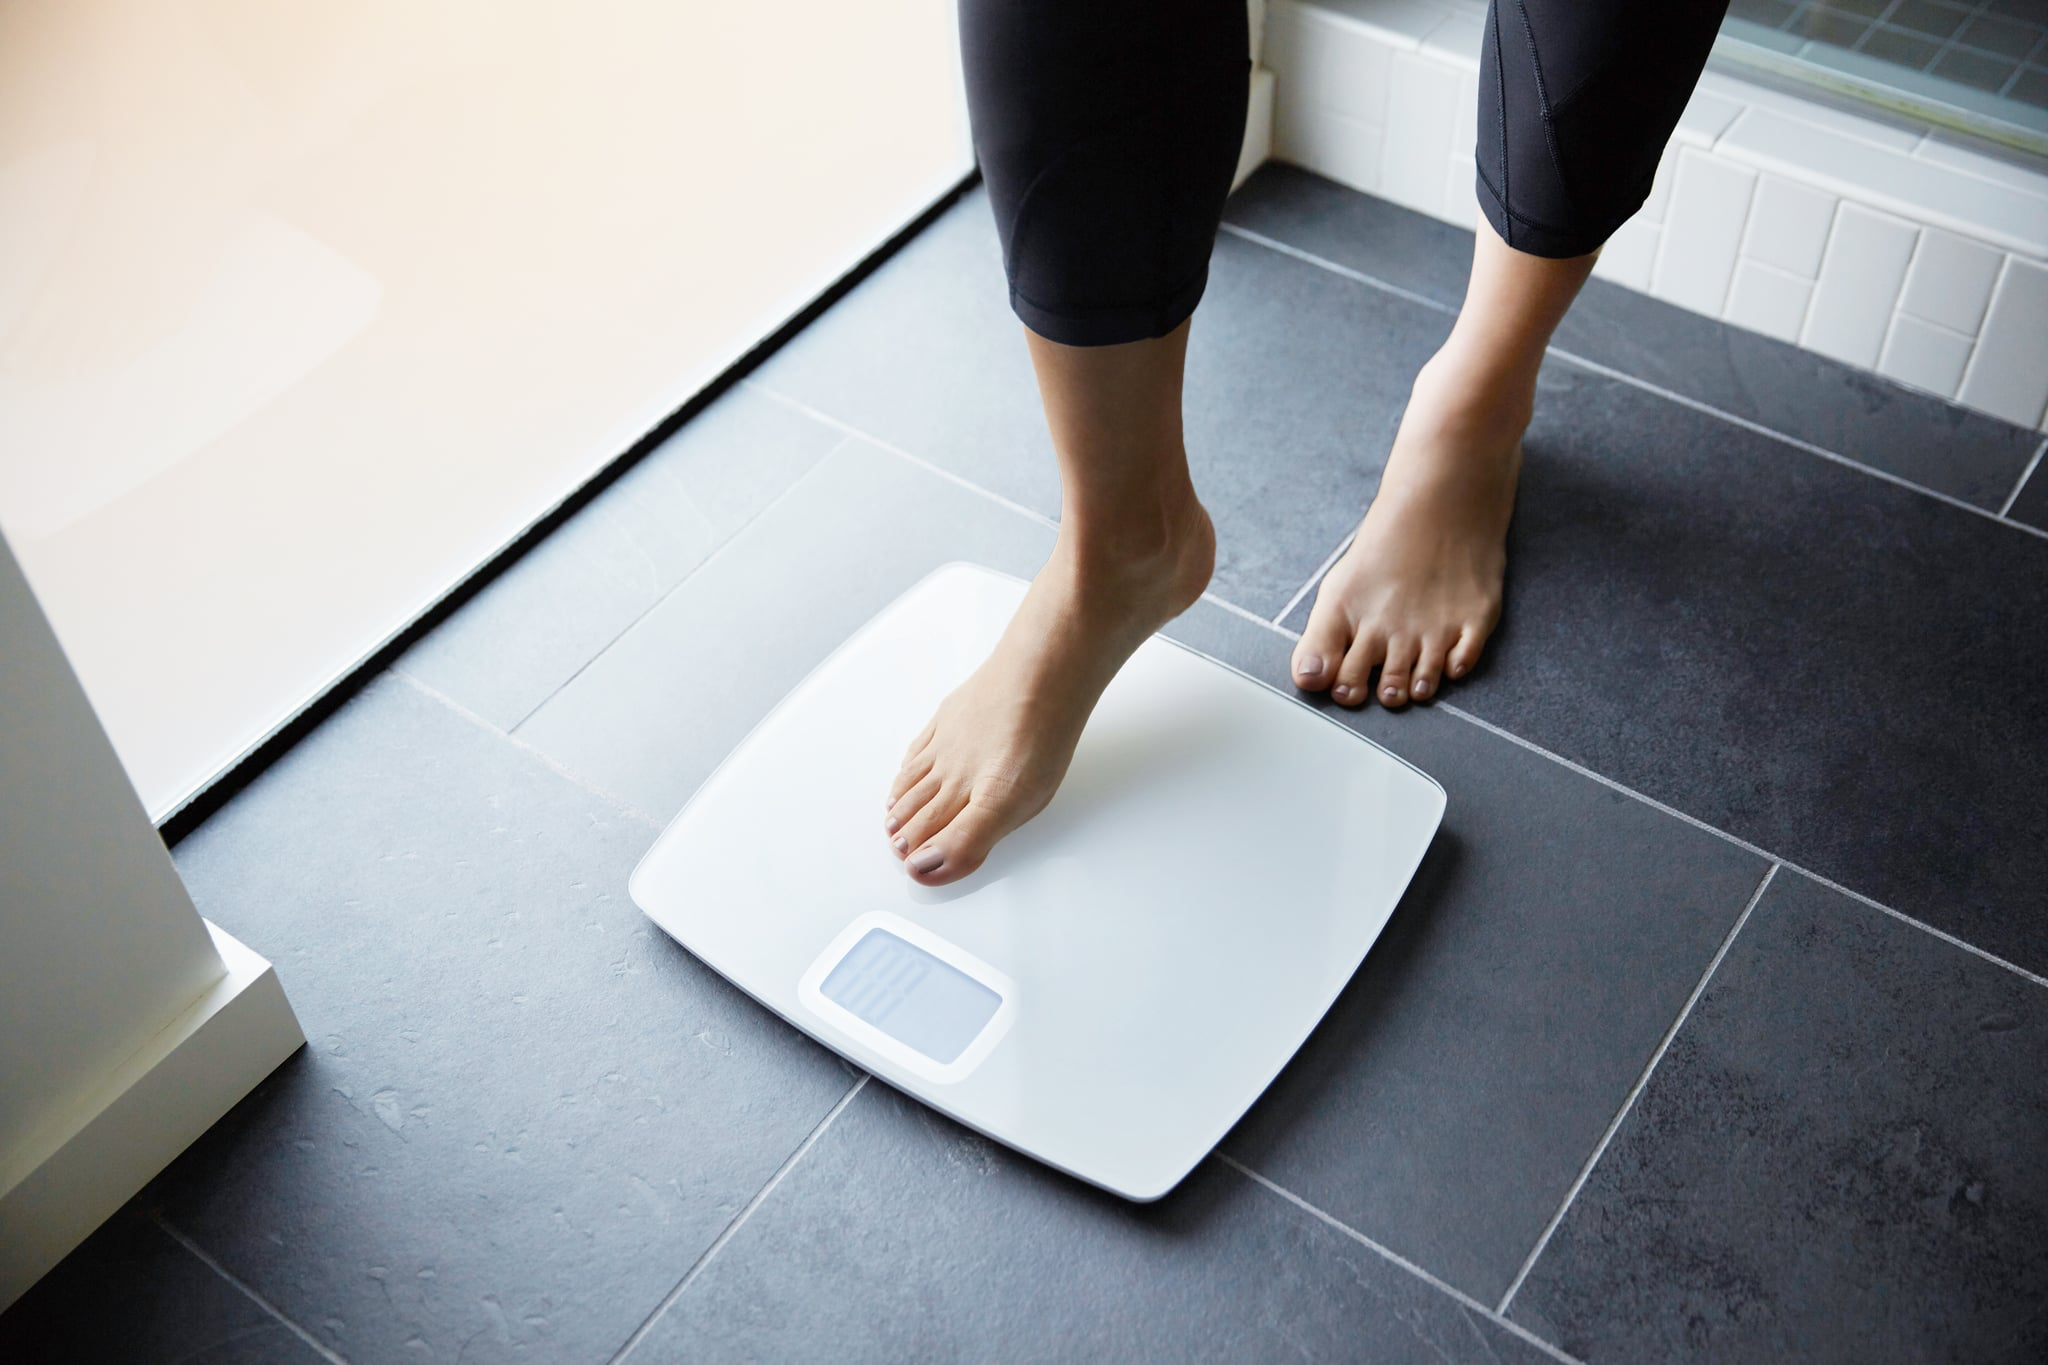 How to Lose Weight in 2 Months | POPSUGAR Fitness